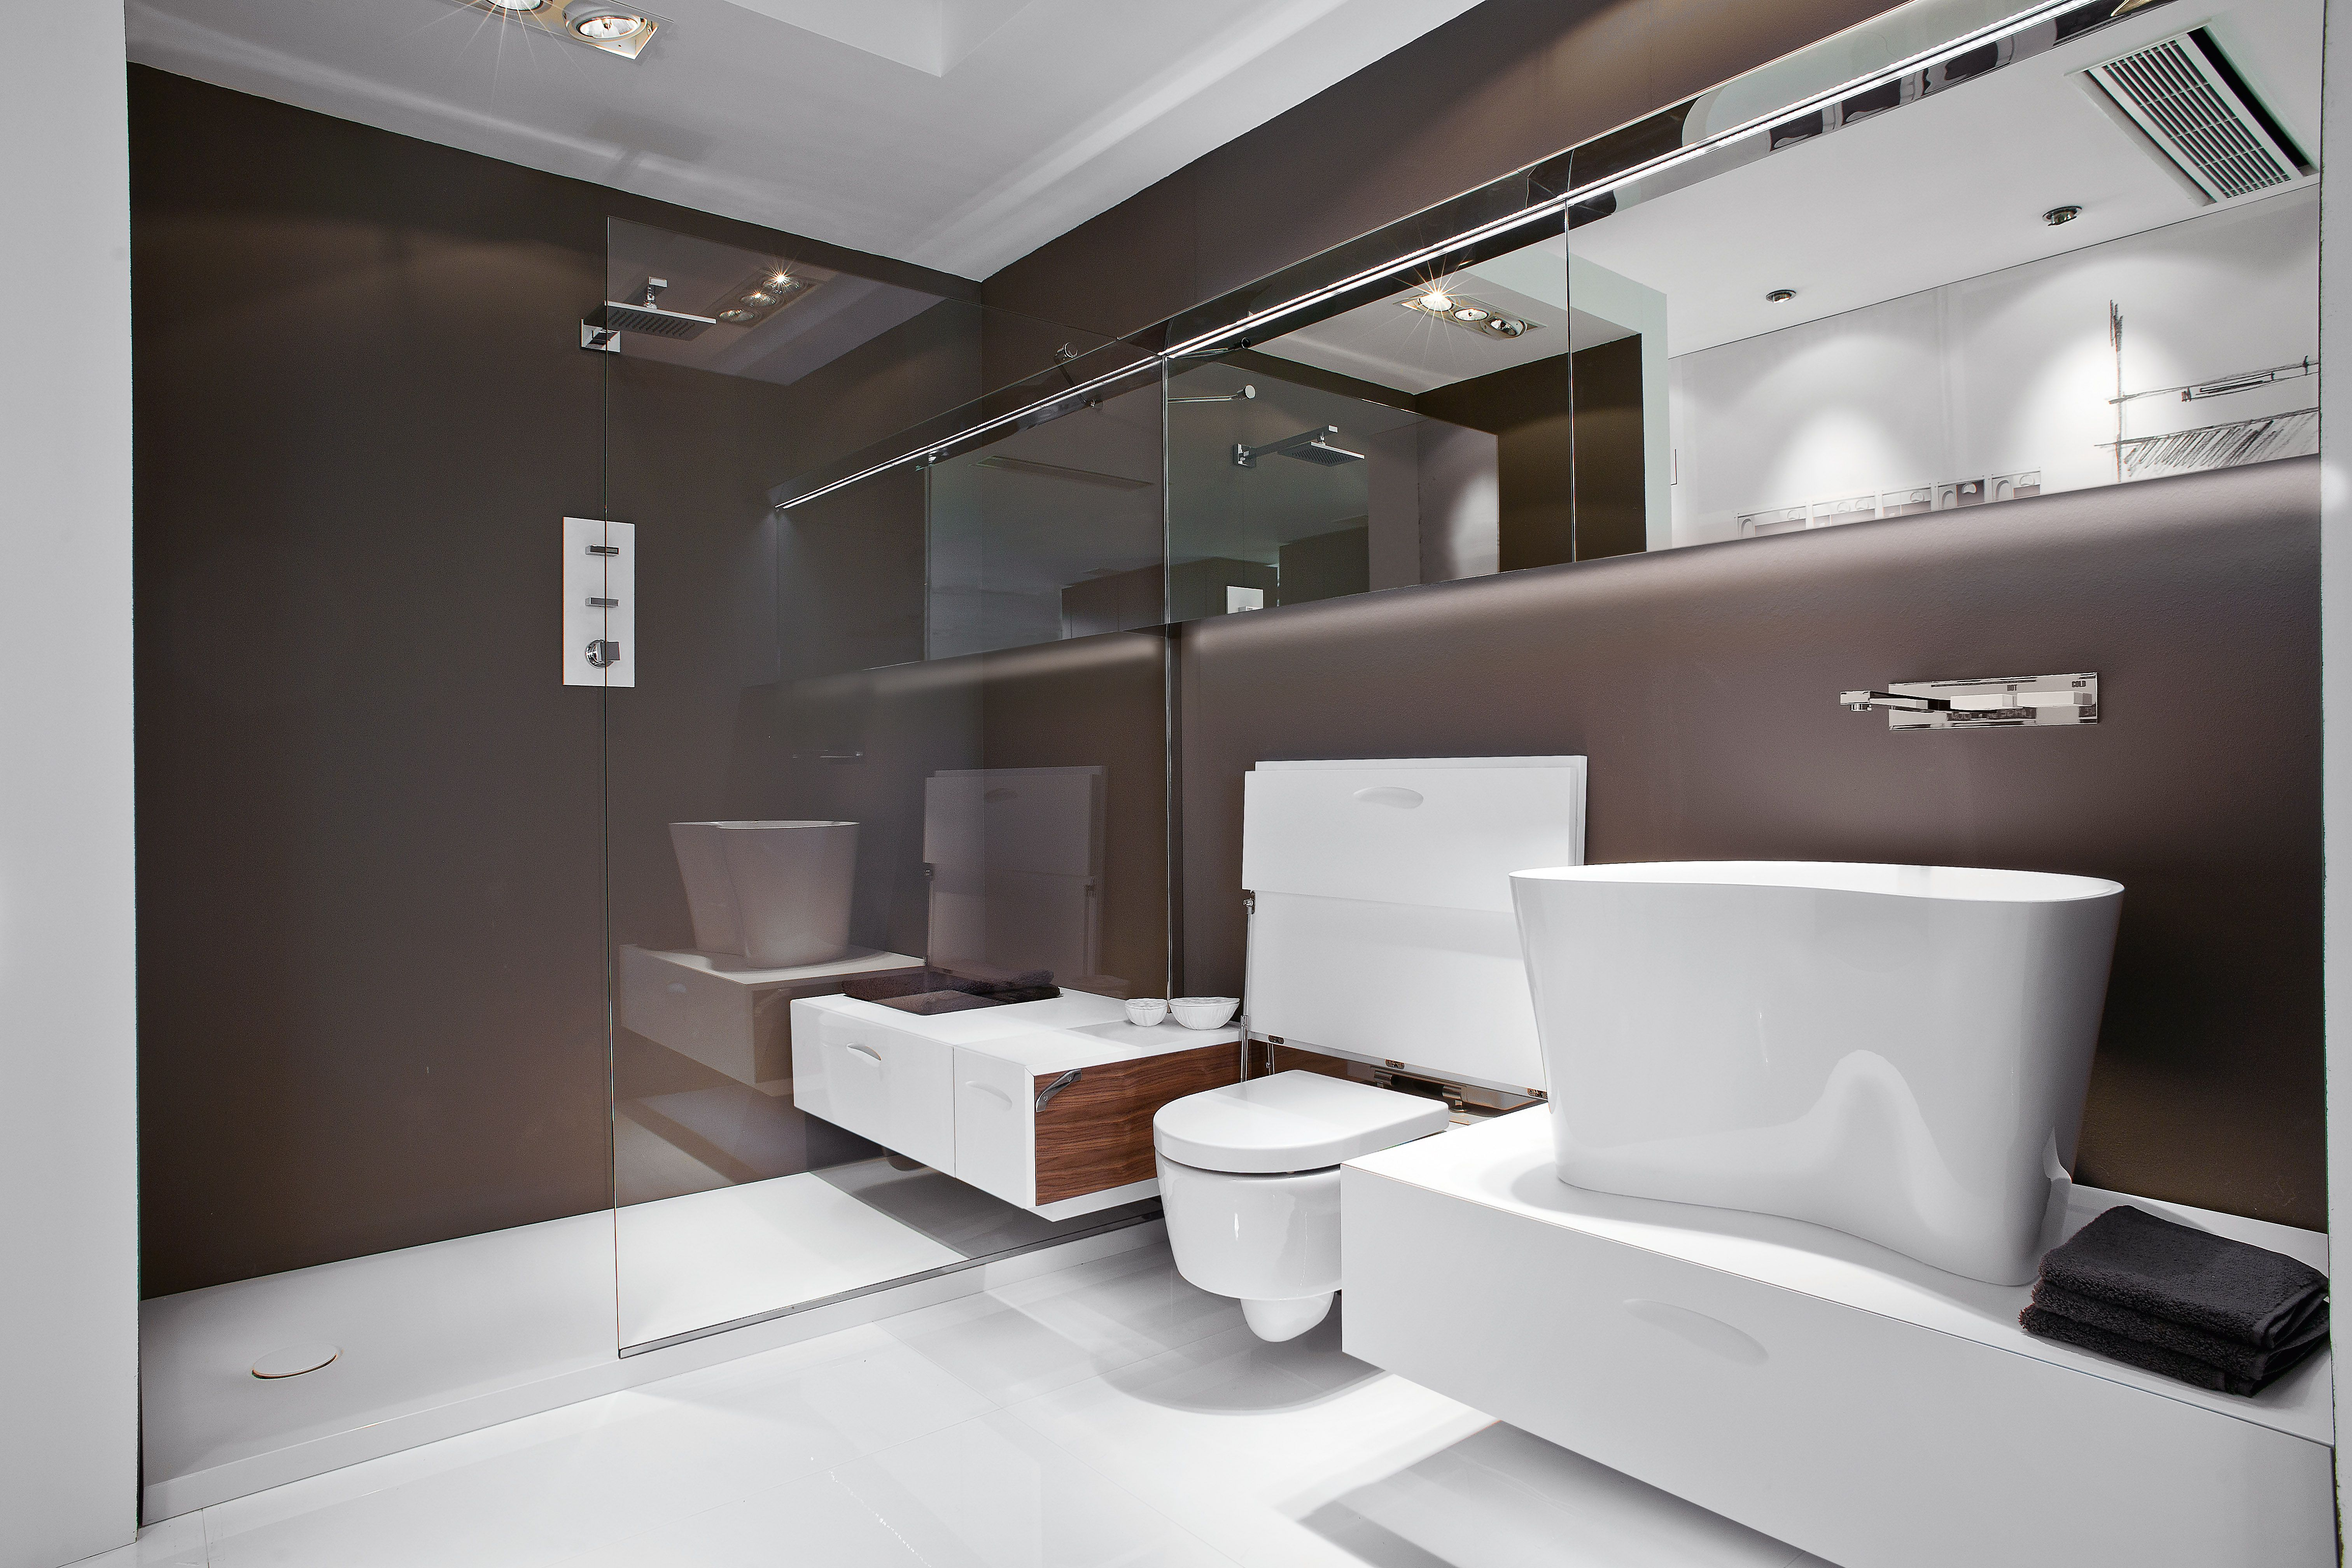 Joints Salle De Bain Bicarbonate ~ Frosted Back Painted Glass Bathroom Pinterest Frosting And